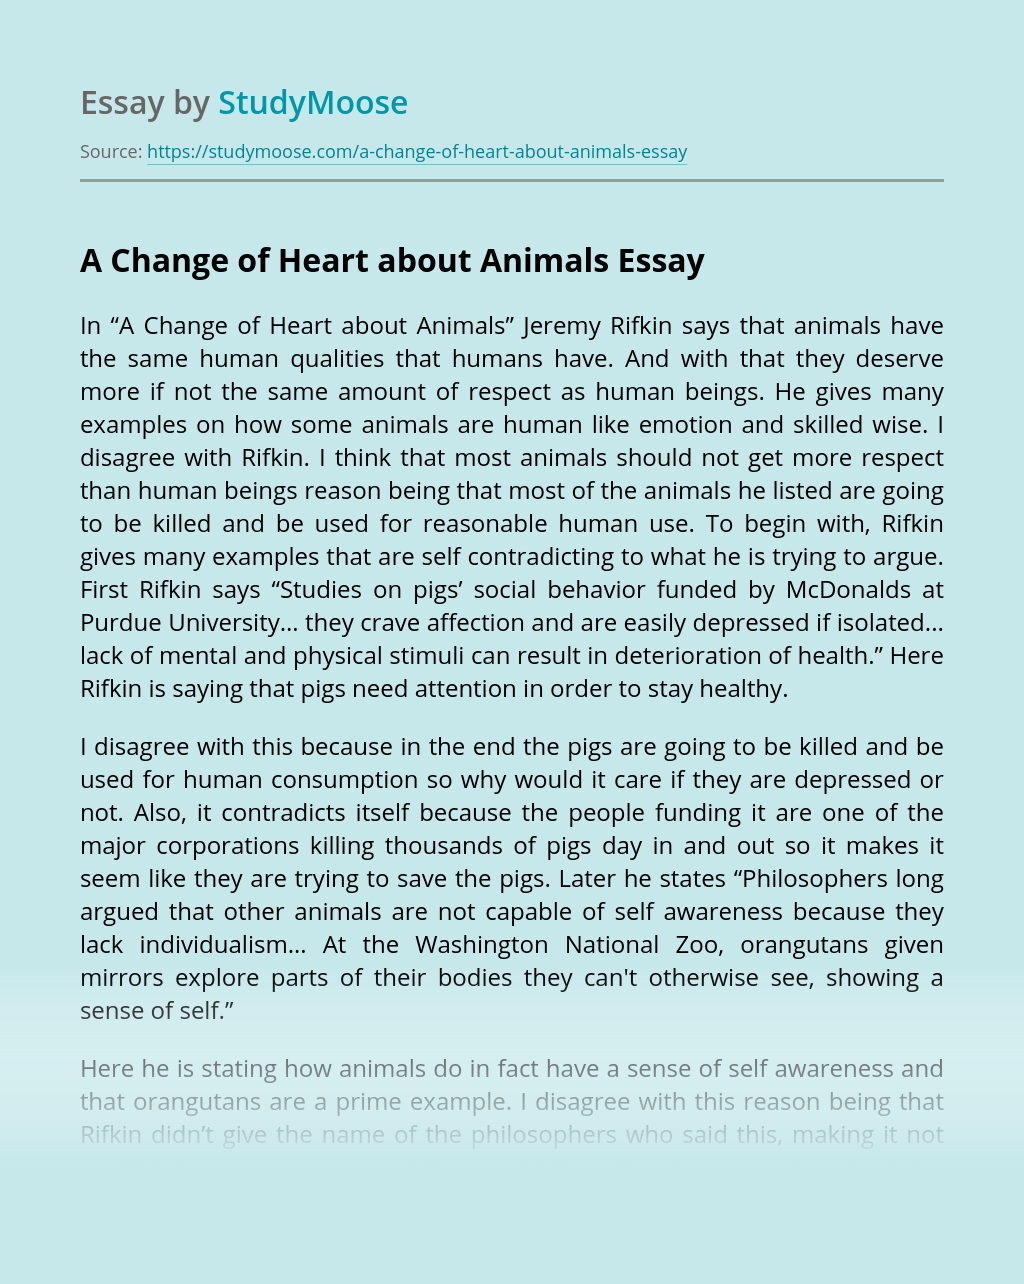 A Change of Heart about Animals